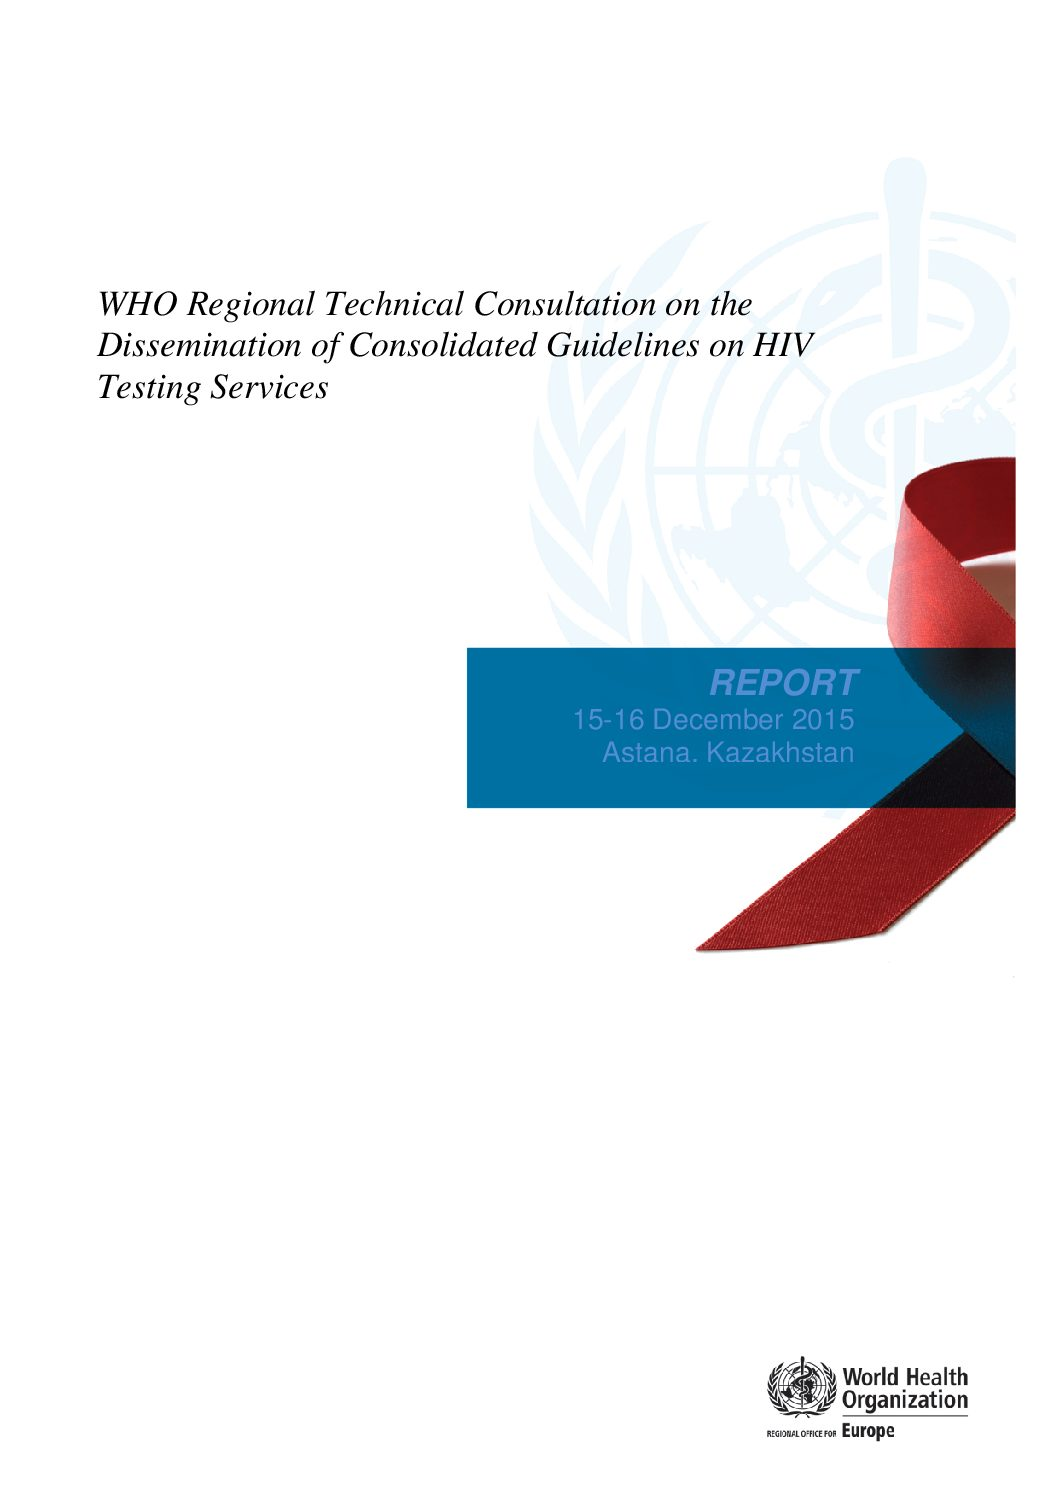 WHO regional technical consultation on the dissemination of consolidated guidelines on HIV testing services. 2016.